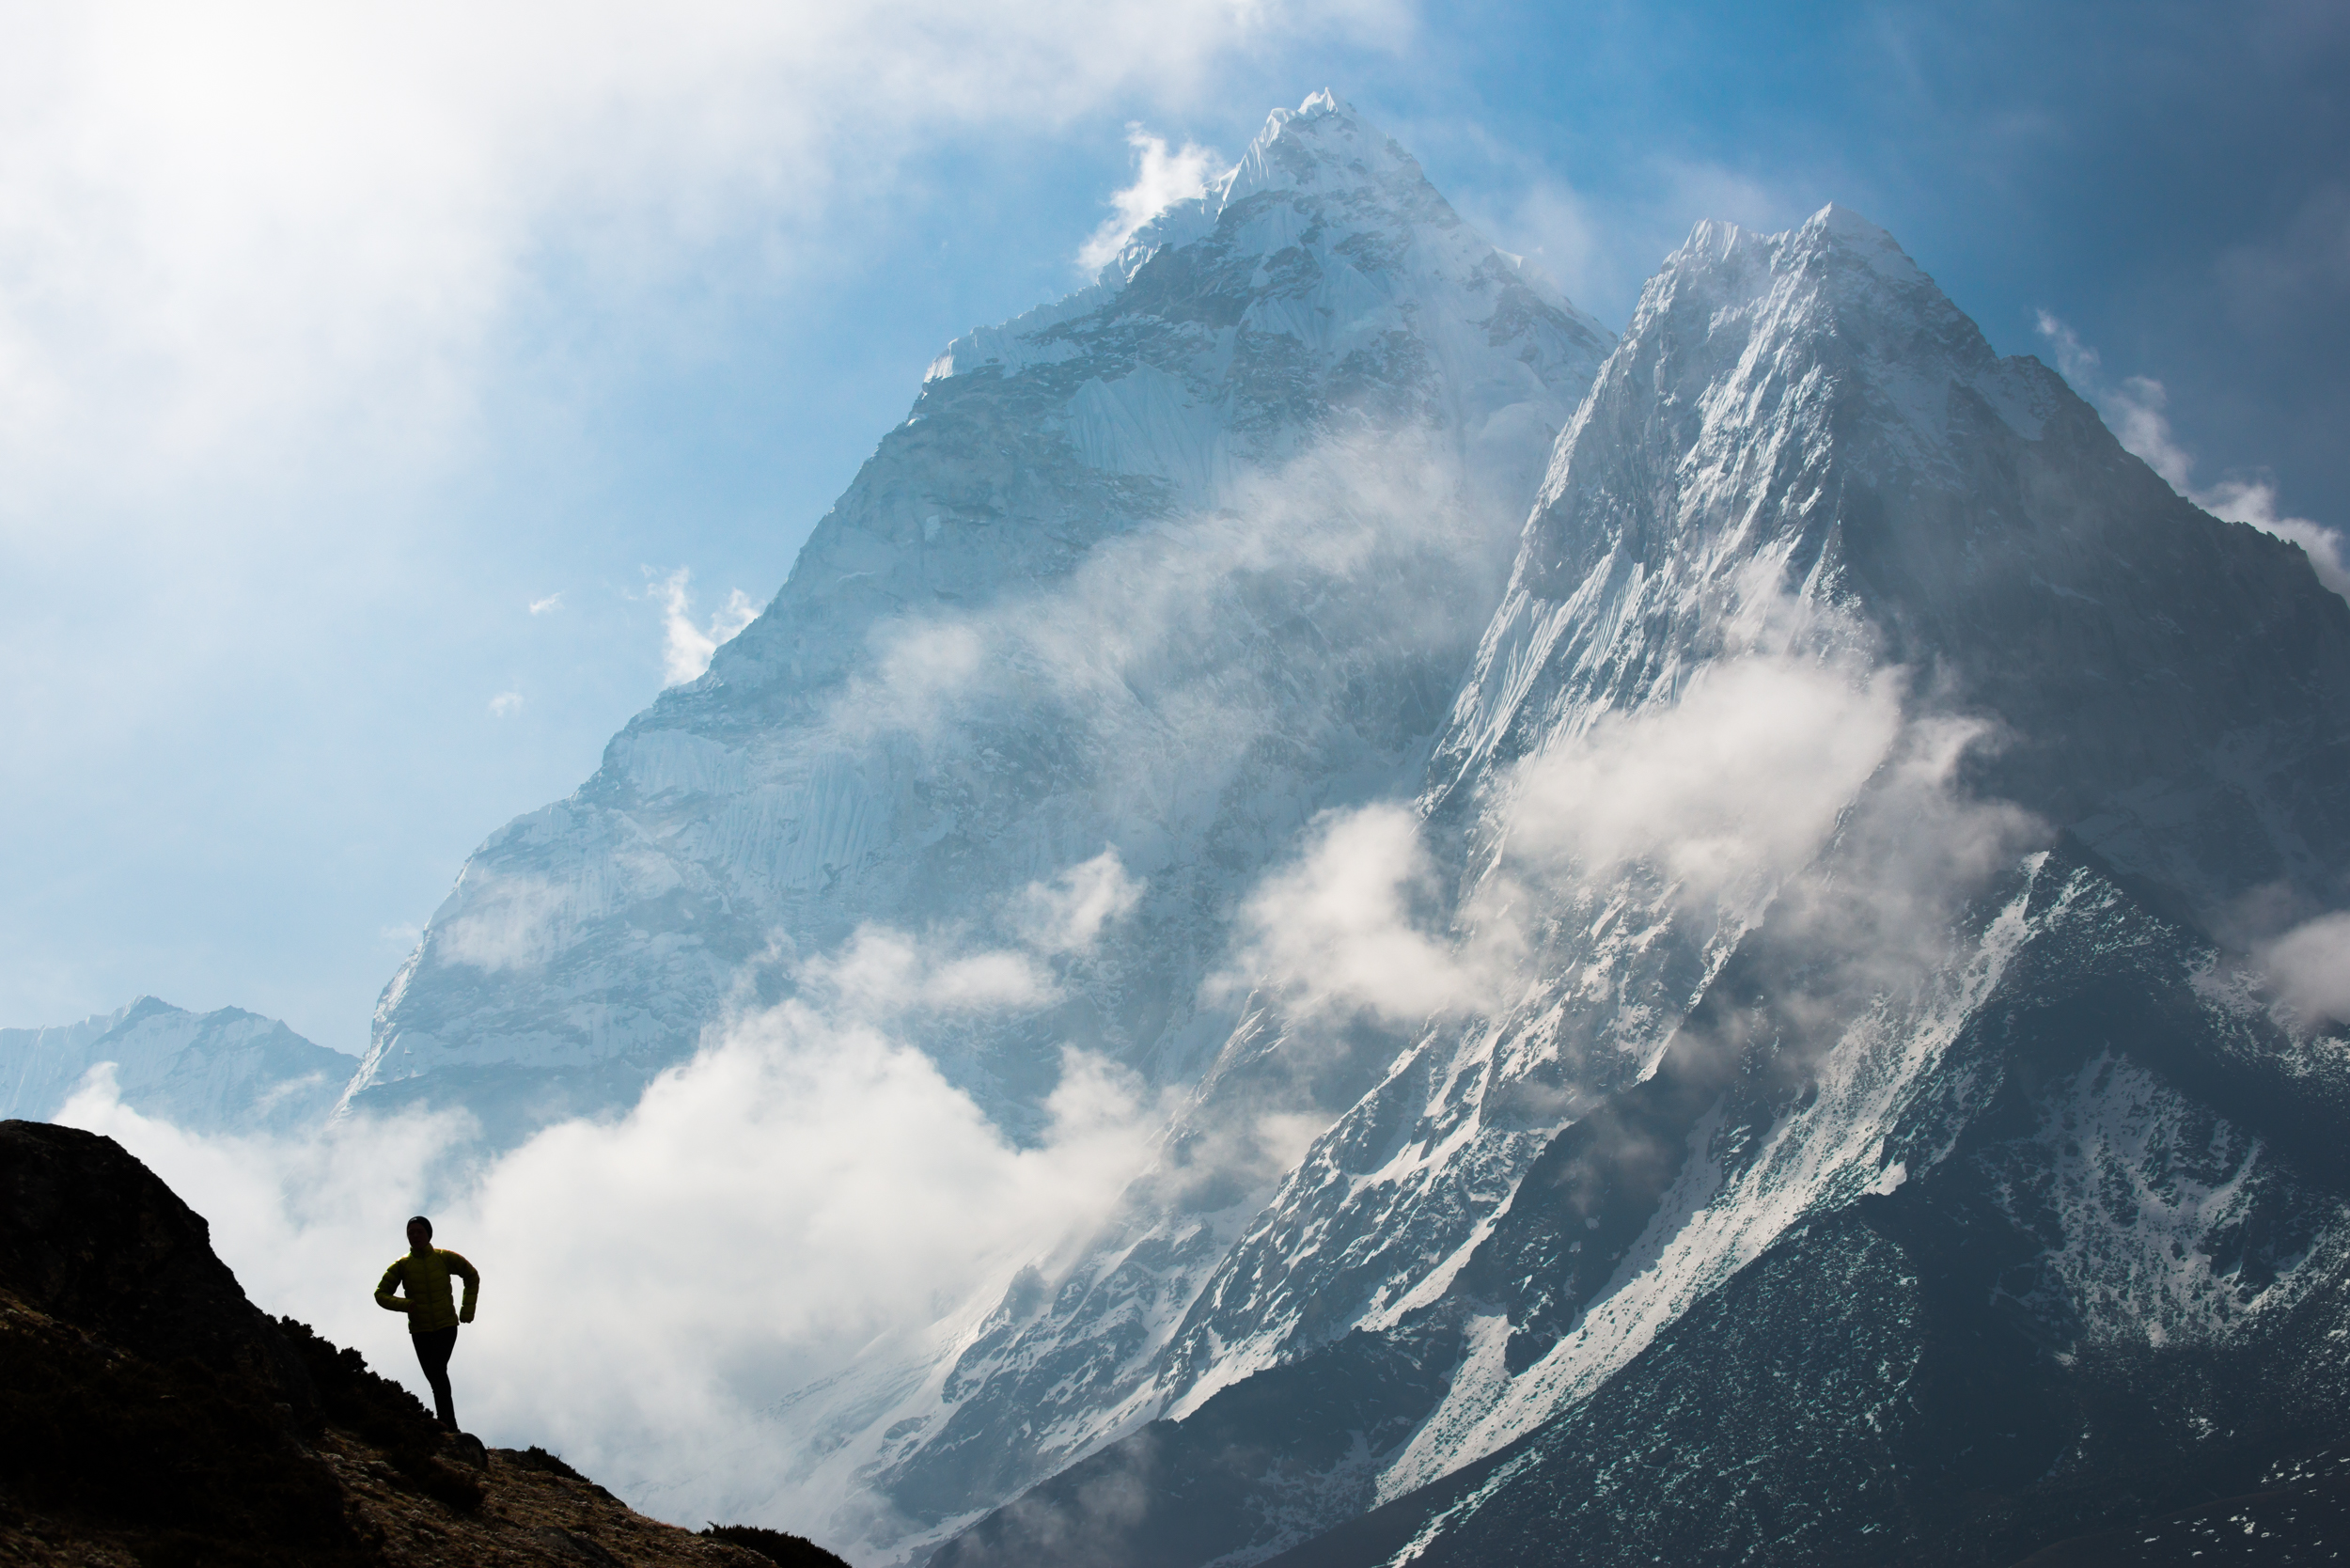 Nepal   Lizzy Hawker – the 100km world champion runner – while competing in the Everest Base Camp to Kathmandu Mailrun: A sleepless 3 day, 319km journey with over 10,000m of ascent and descent. Here Lizzy runs with with views of Ama Dablam behind